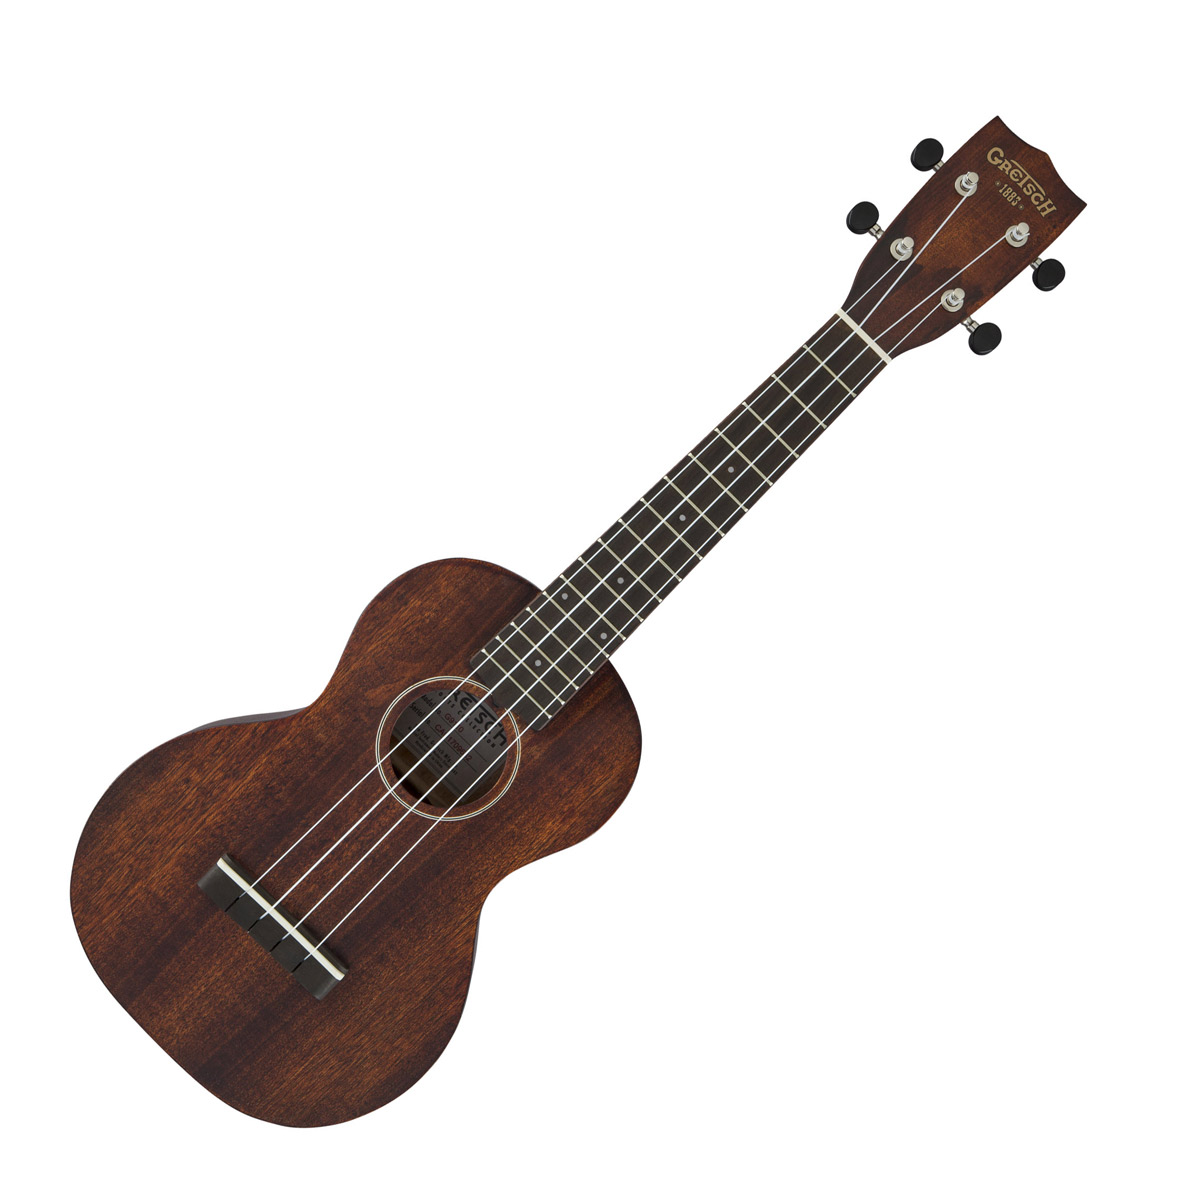 gretsch g9110 concert standard ukulele vintage mahogany stain gretsch roots. Black Bedroom Furniture Sets. Home Design Ideas